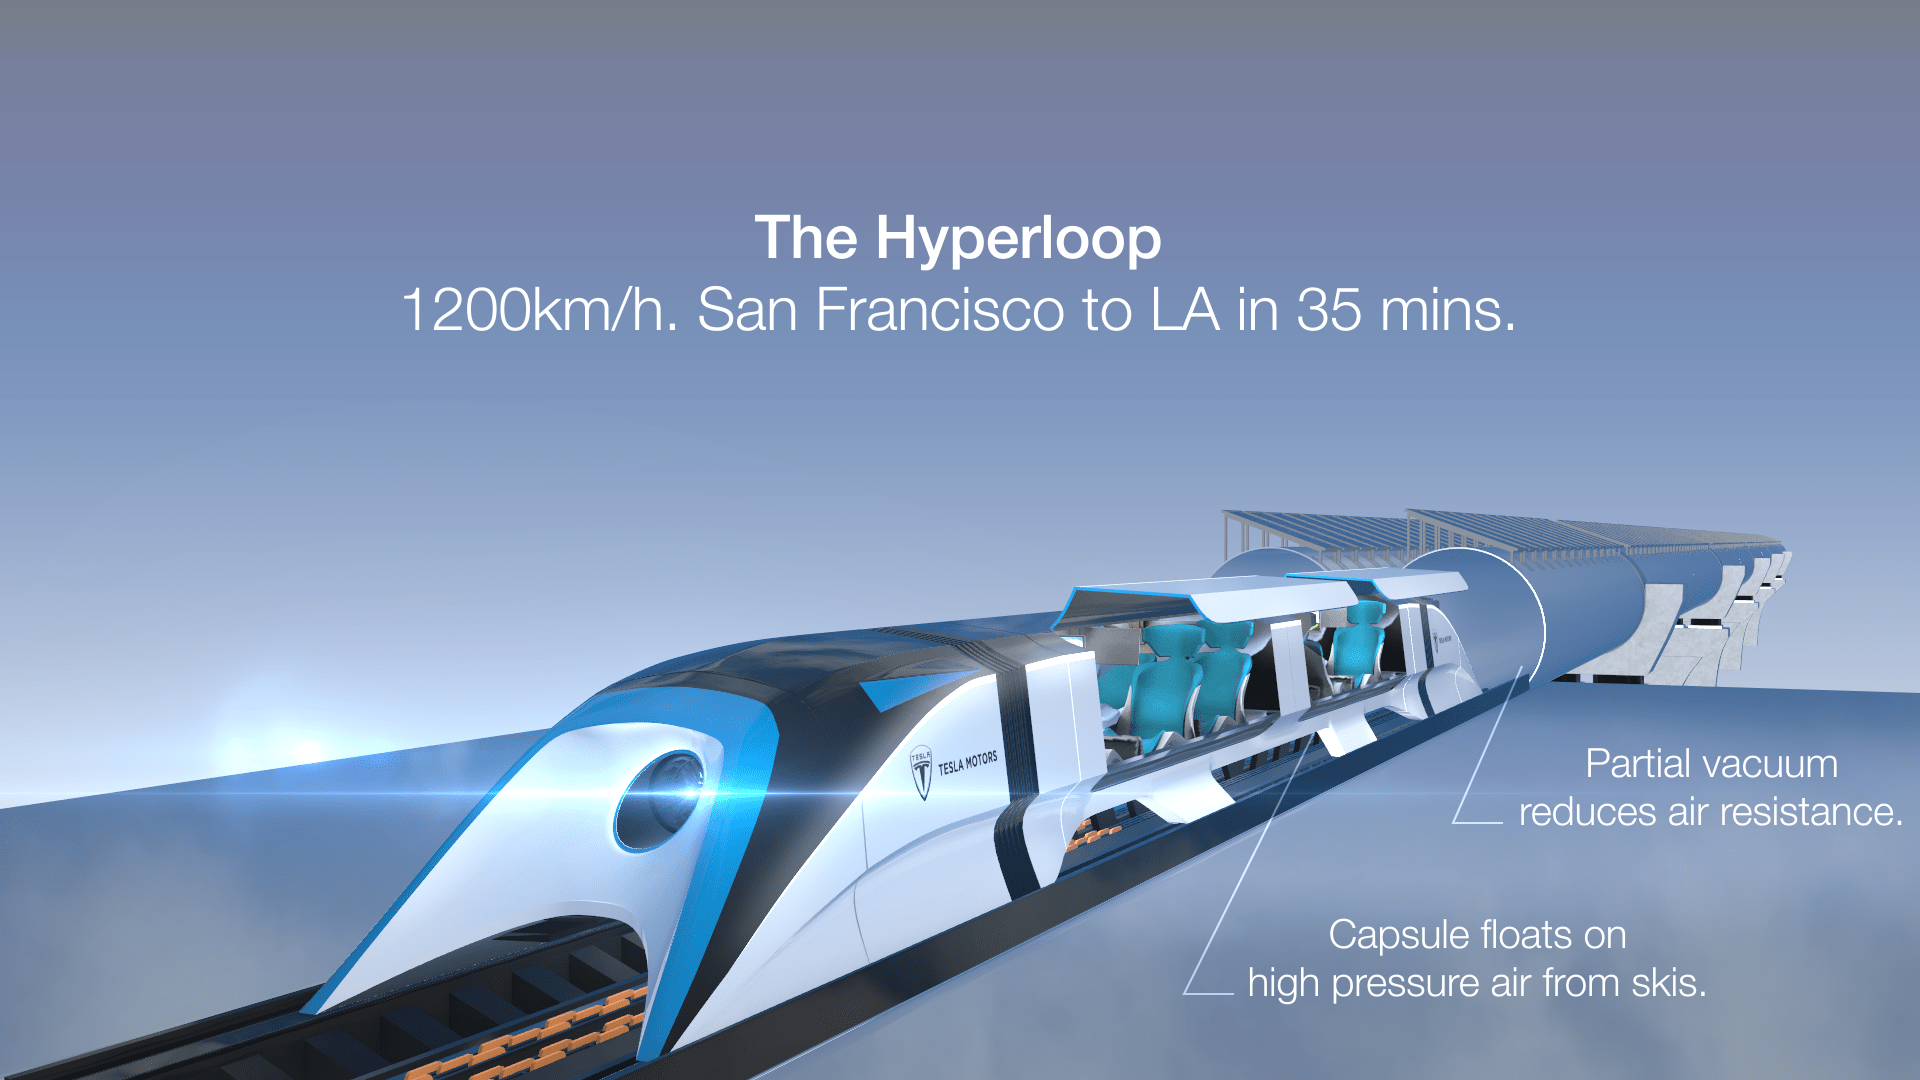 7 Hyperloop Facts Elon Musk would Love us to Know